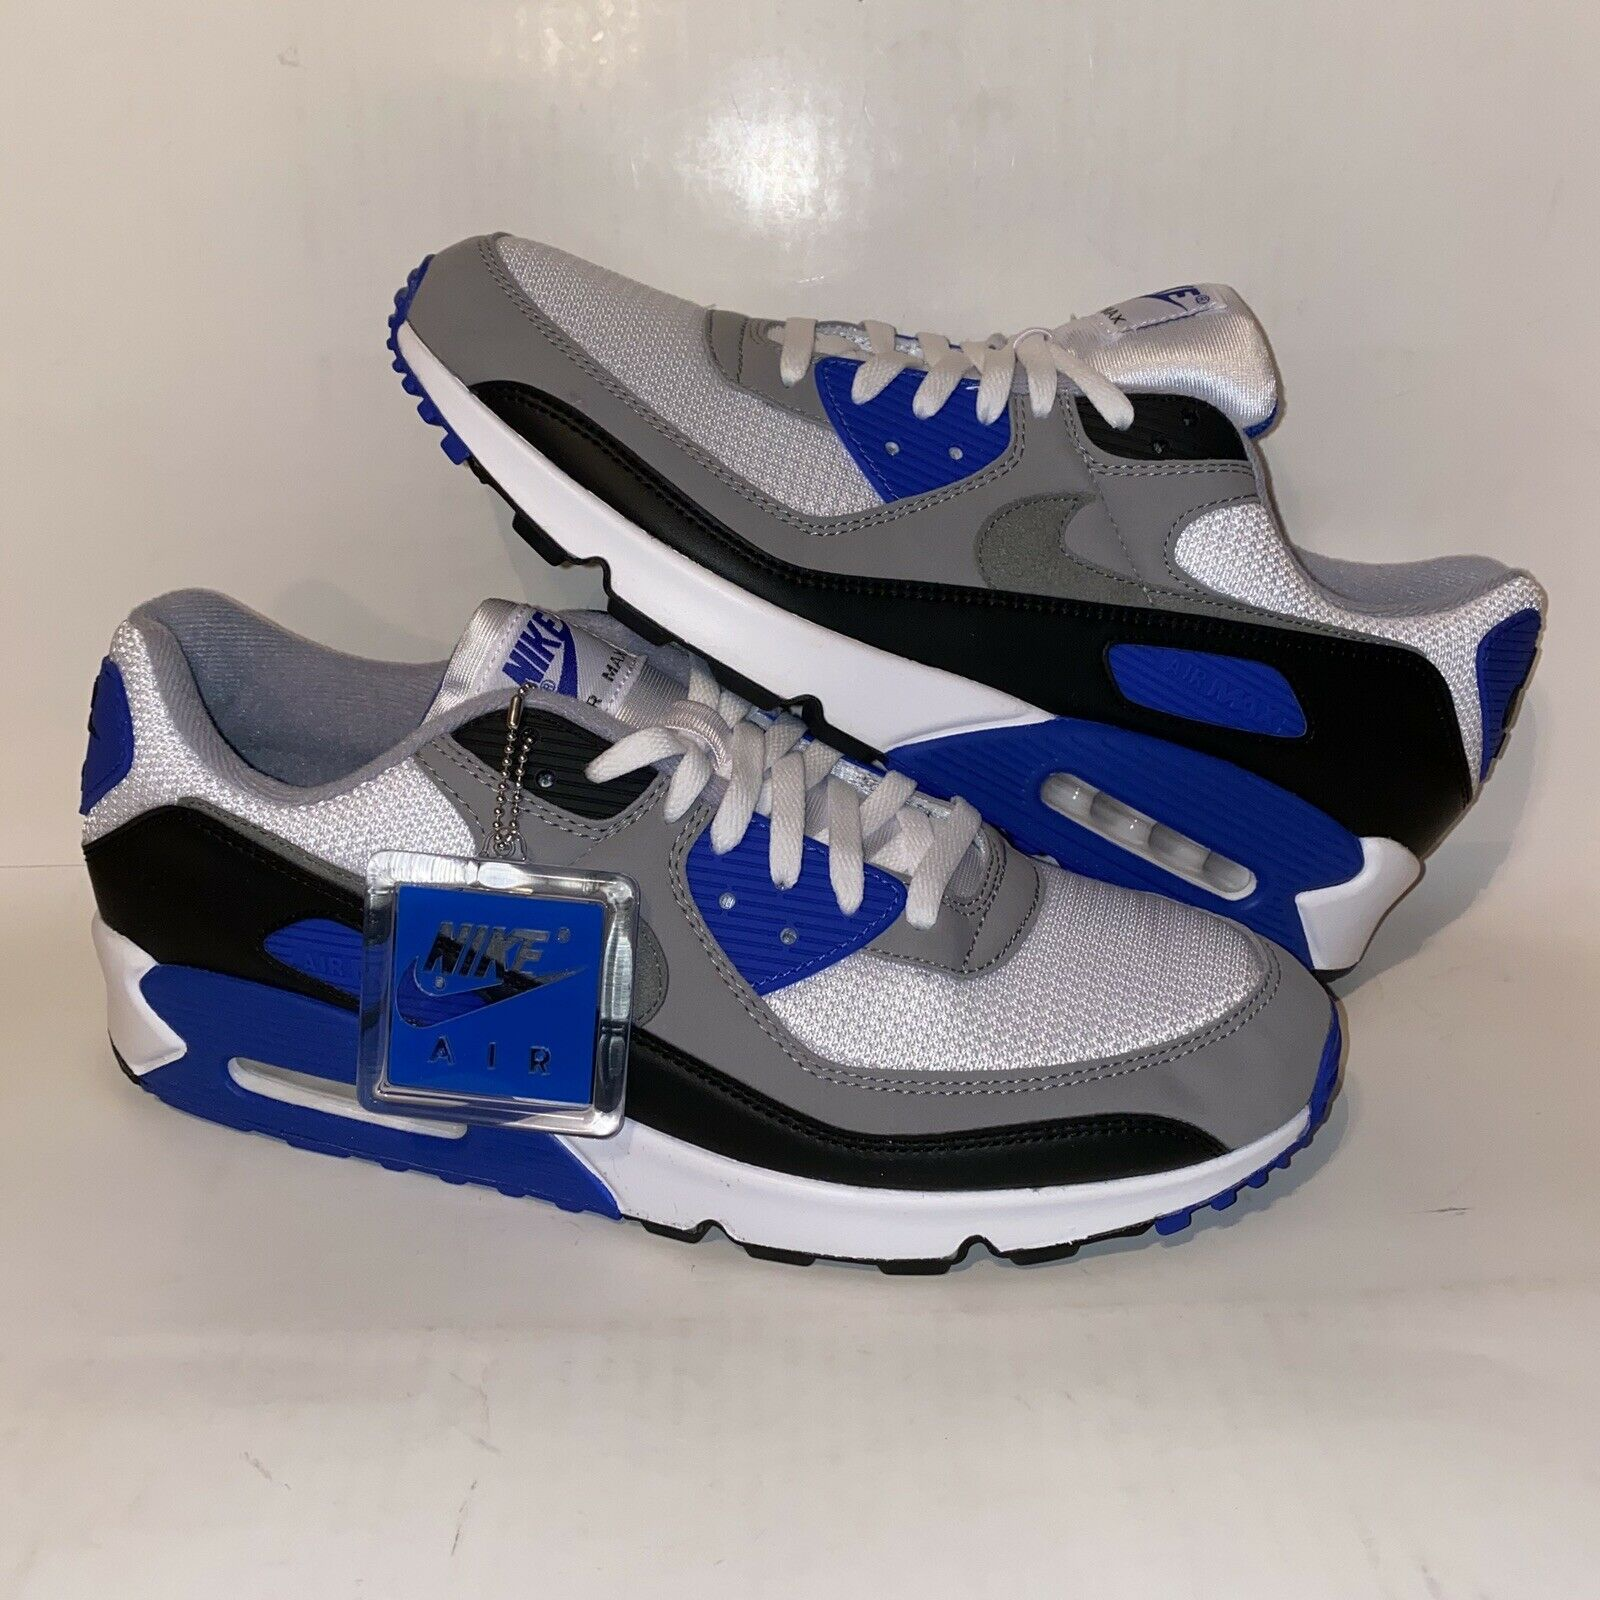 Nike Air Max 90 Recraft Royal